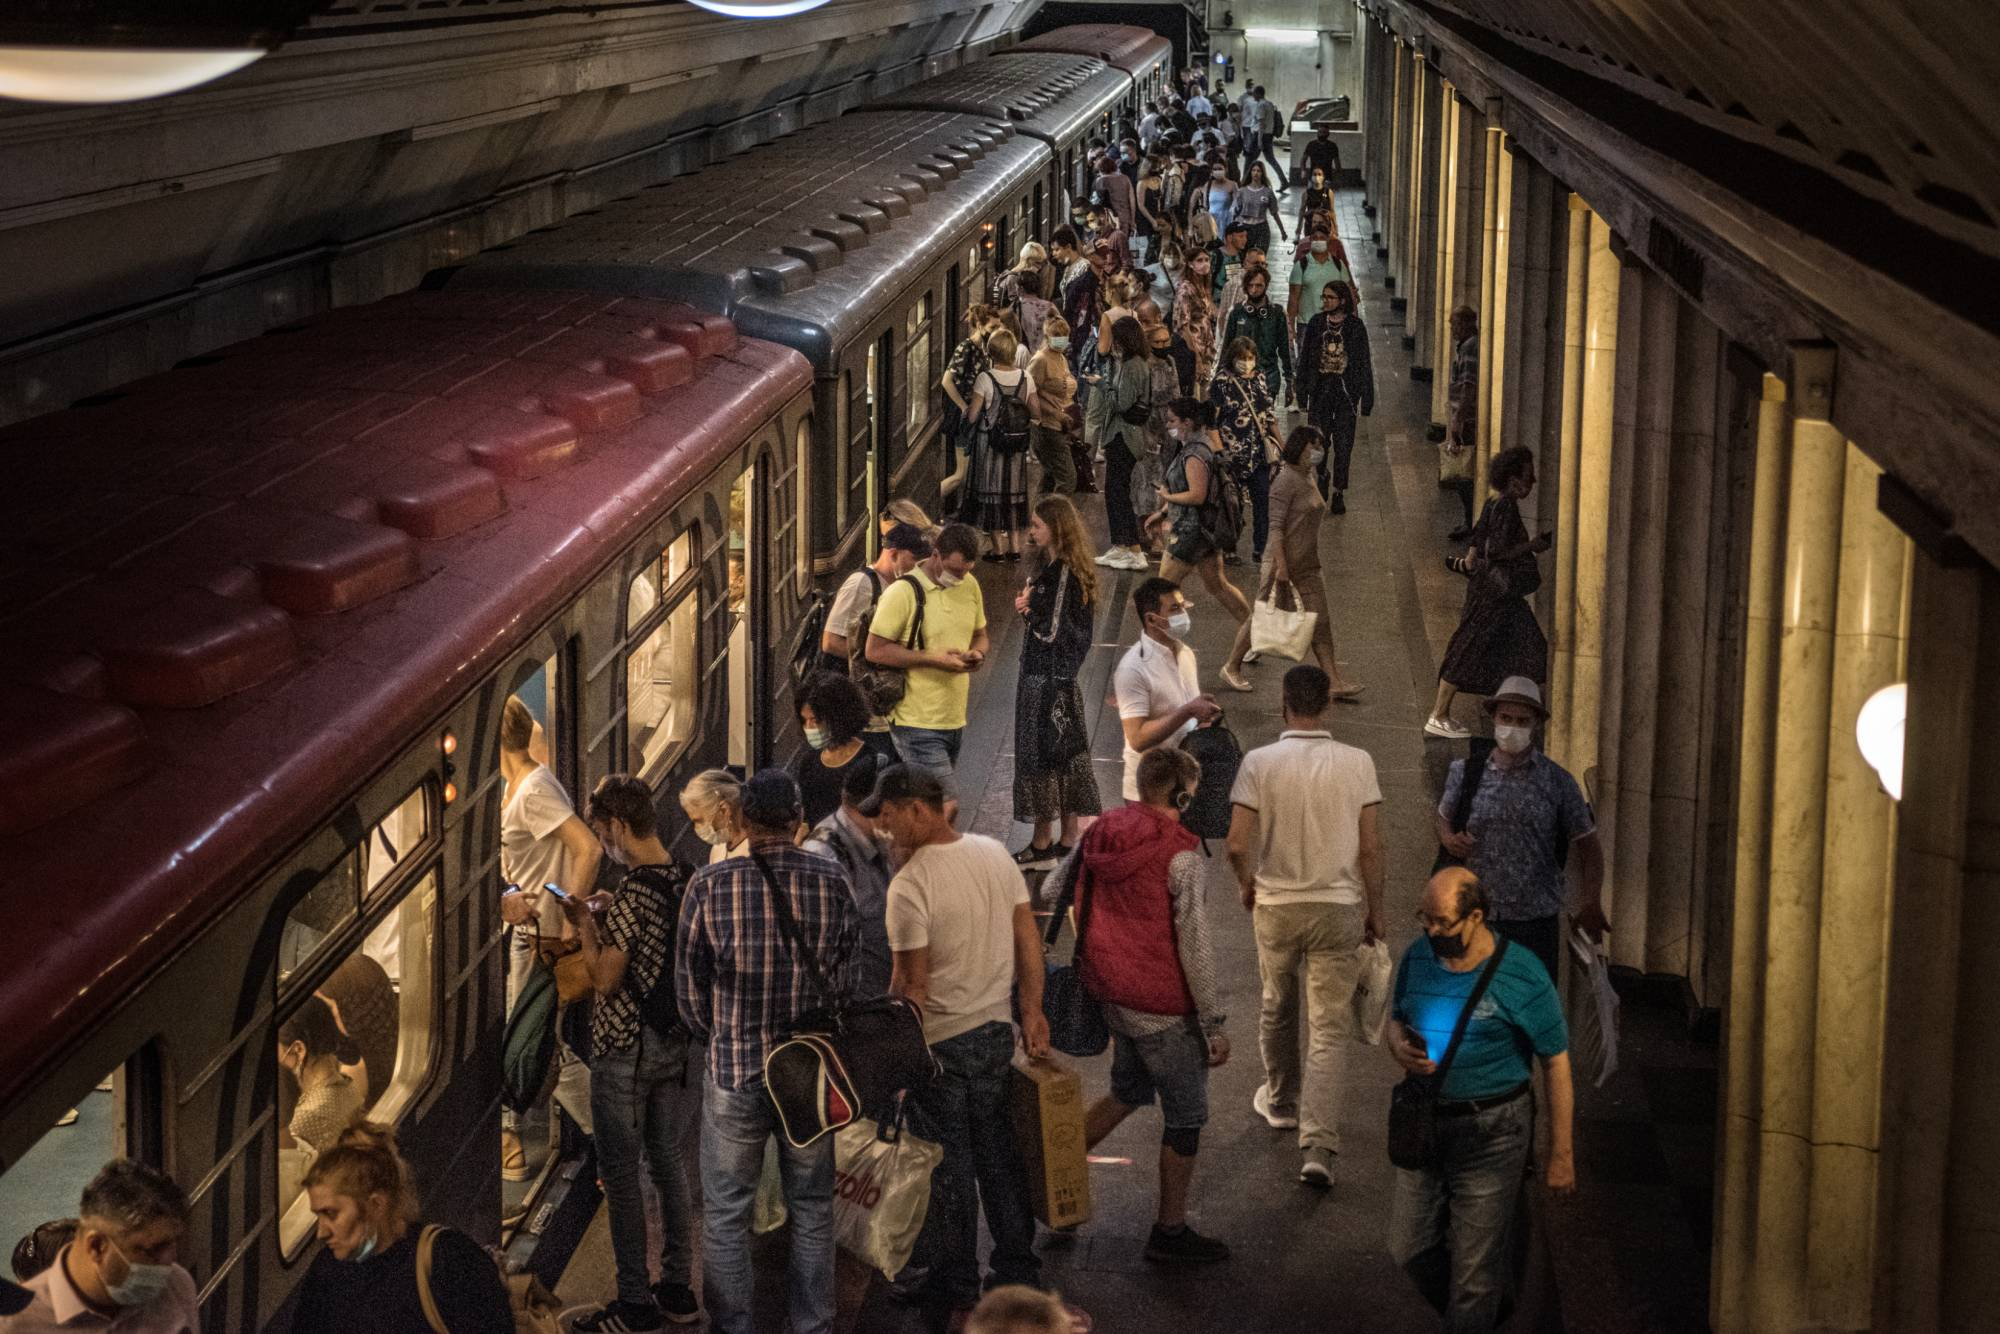 Subway commuters are seen Tuesday in Moscow, where the mayor said Friday that 89.3% of all new coronavirus cases there involve the highly contagious Delta variant.     SERGEY PONOMAREV/THE NEW YORK TIMES